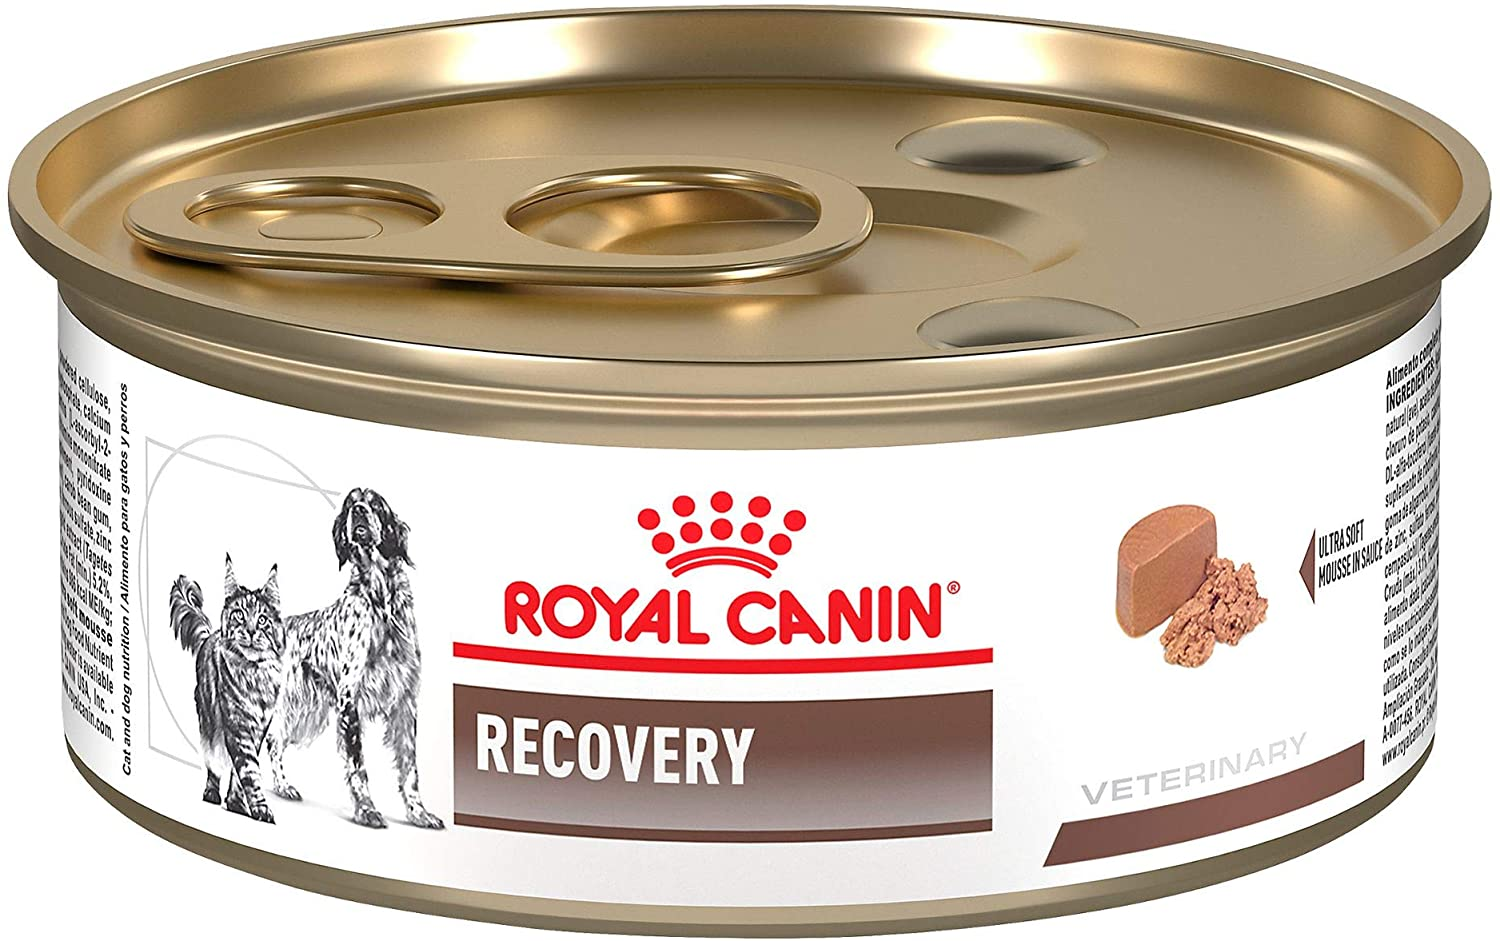 Royal Canin Veterinary Diet Feline And Canine Recovery Rs In Gel Canned Cat and Dog Food, 5.8 oz